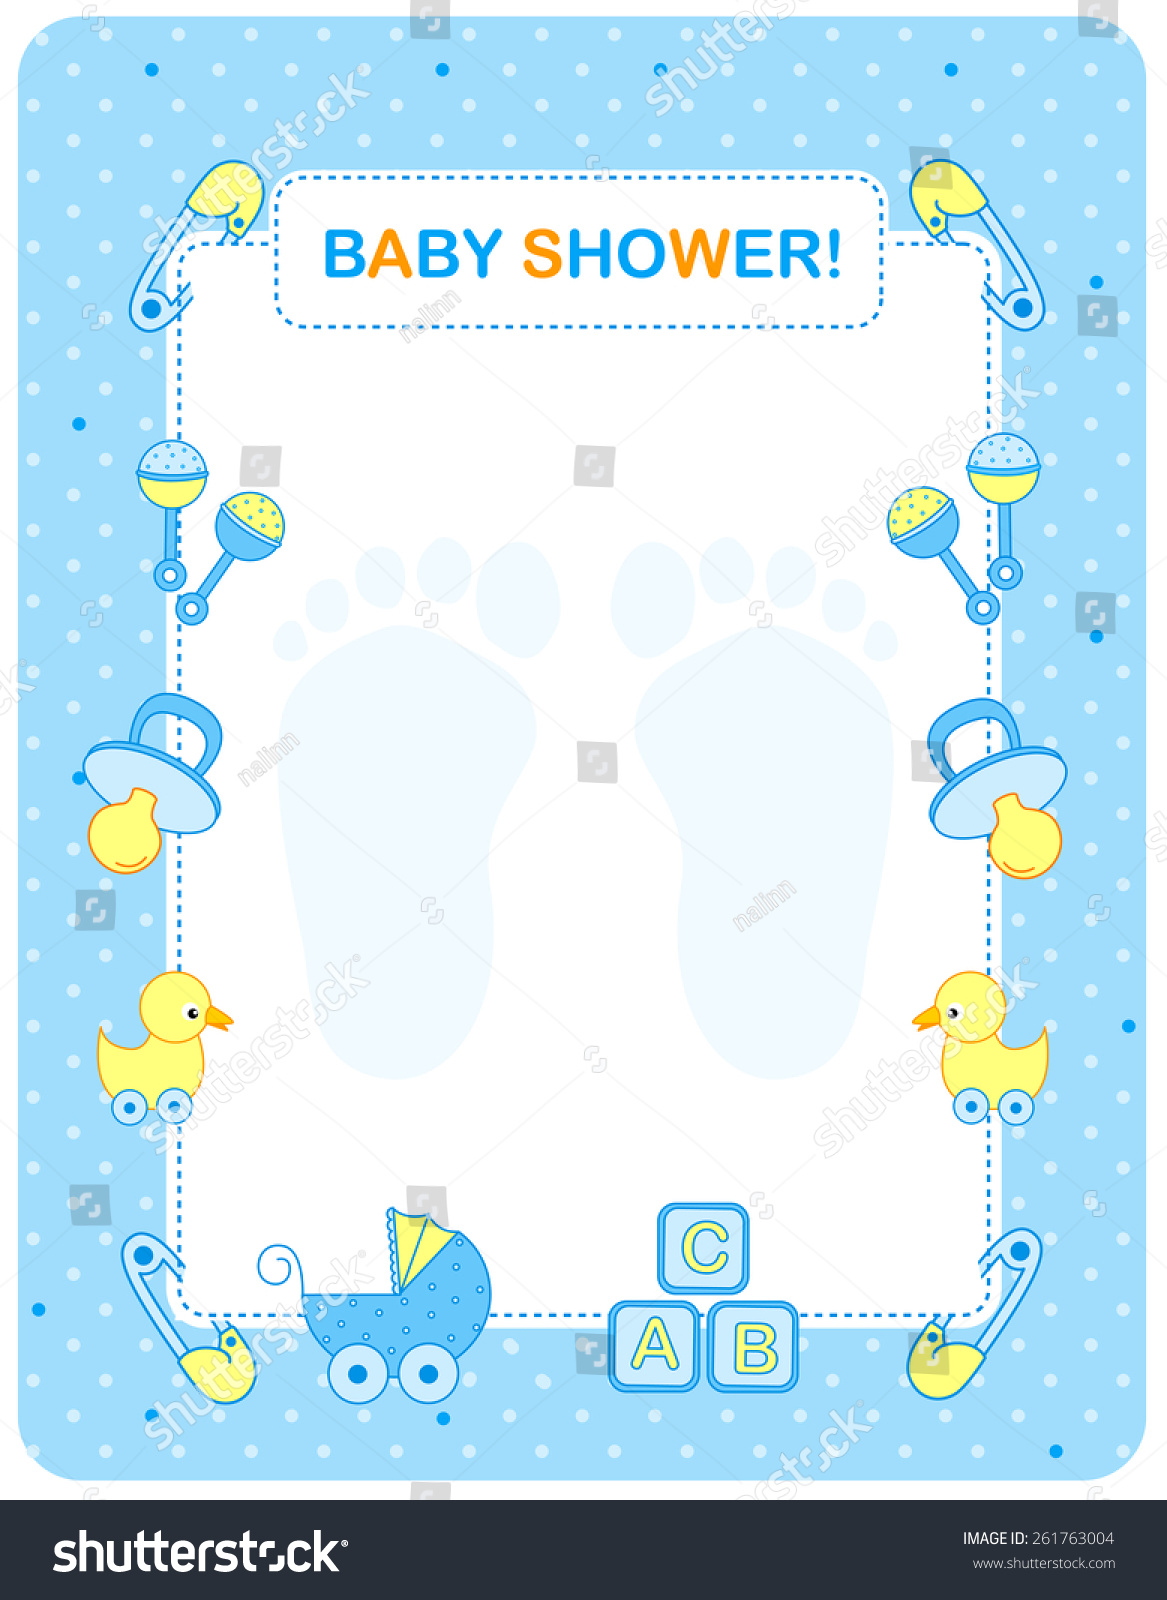 Illustration Baby Shower Invitation Card Border Stock Vector ...